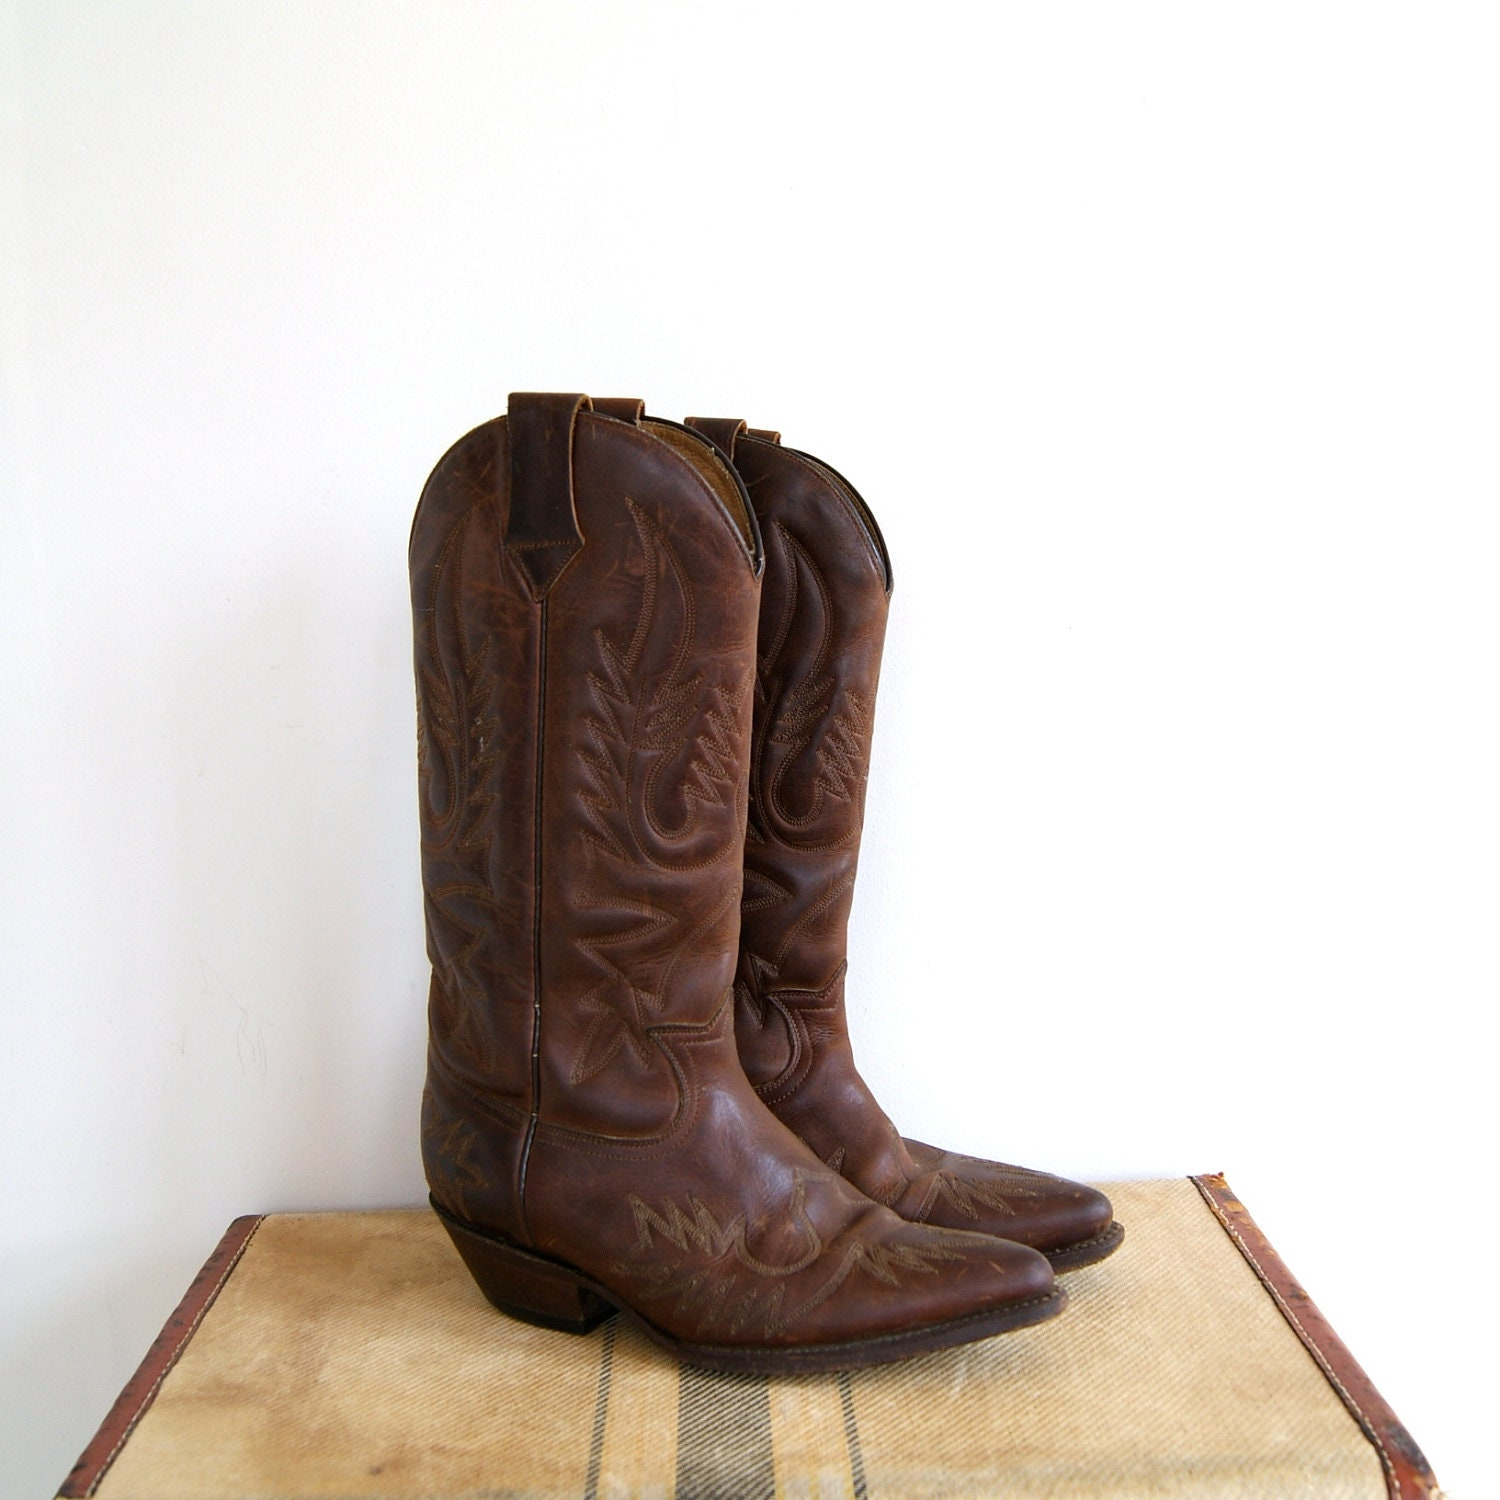 Fantastic Cowboy Boots, Vintage Purses And Jewelry, Vintage Sleepwear, And Womens Eveningwear Many Come Here For The Cowboy Boots, Which Are Plentiful, In All Thinkable Colors, Styles And Sizes Located A Bit